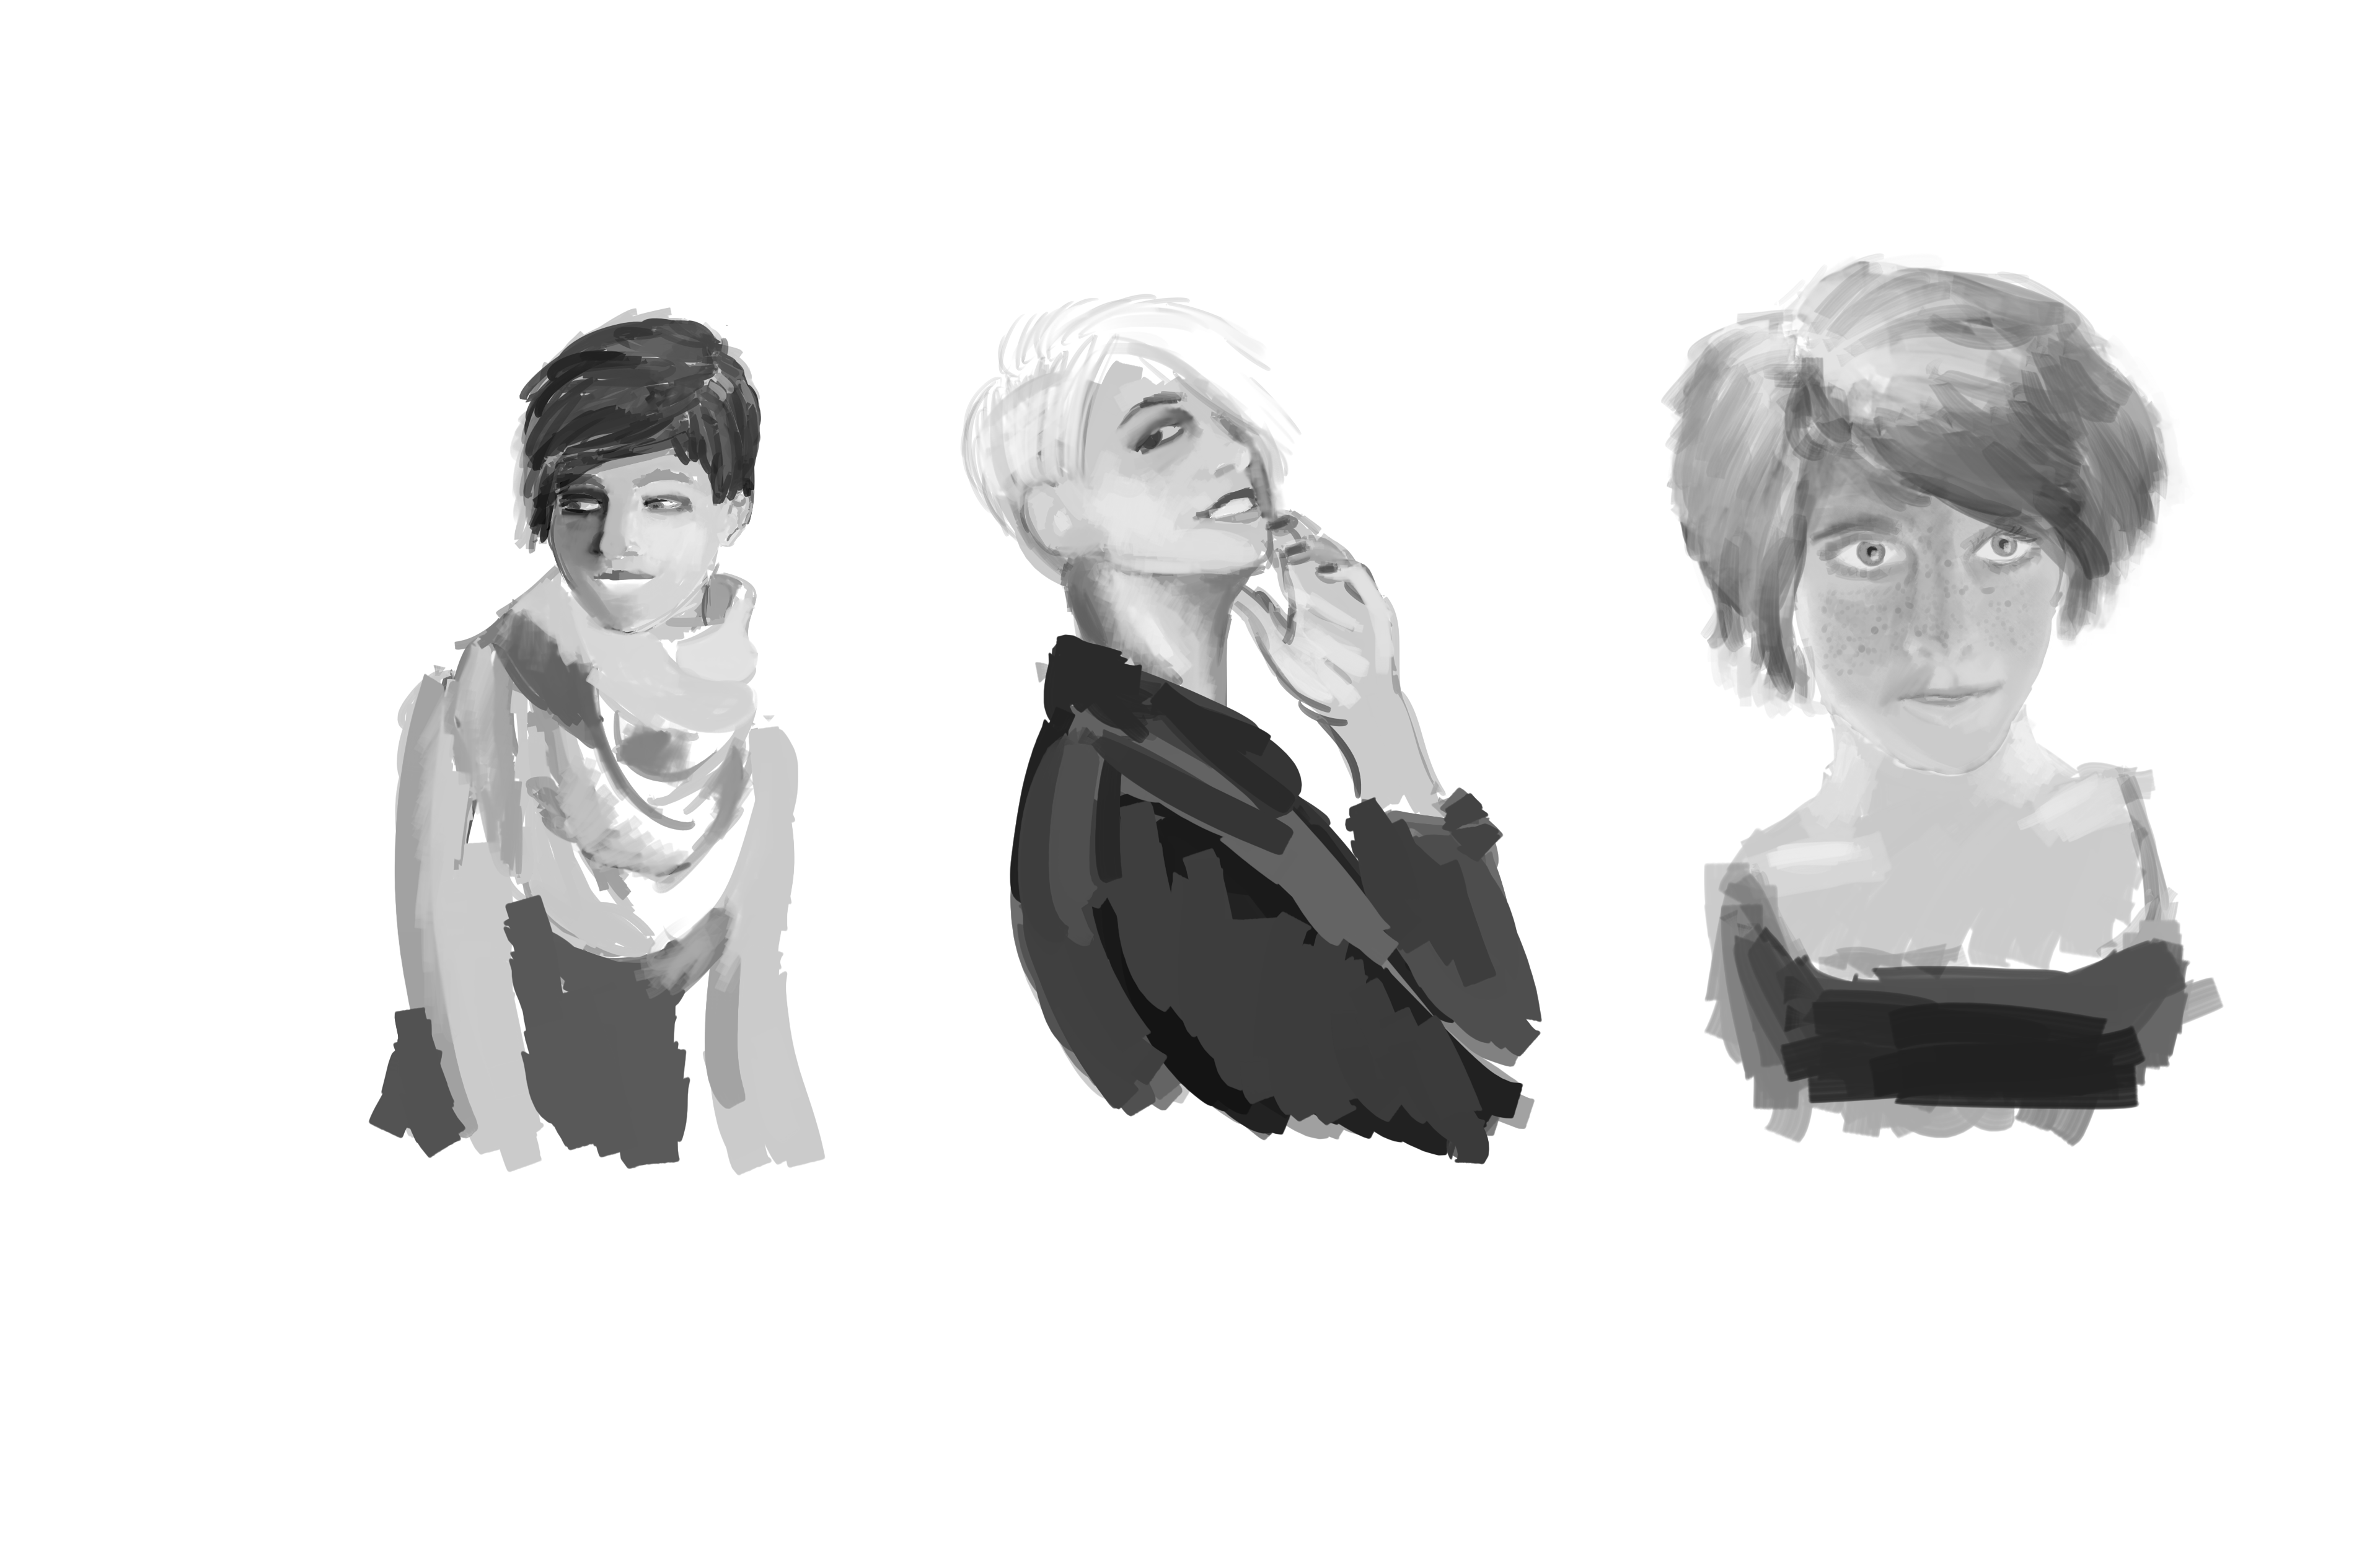 practice sketches for people faces and junk by dinglemcgee on